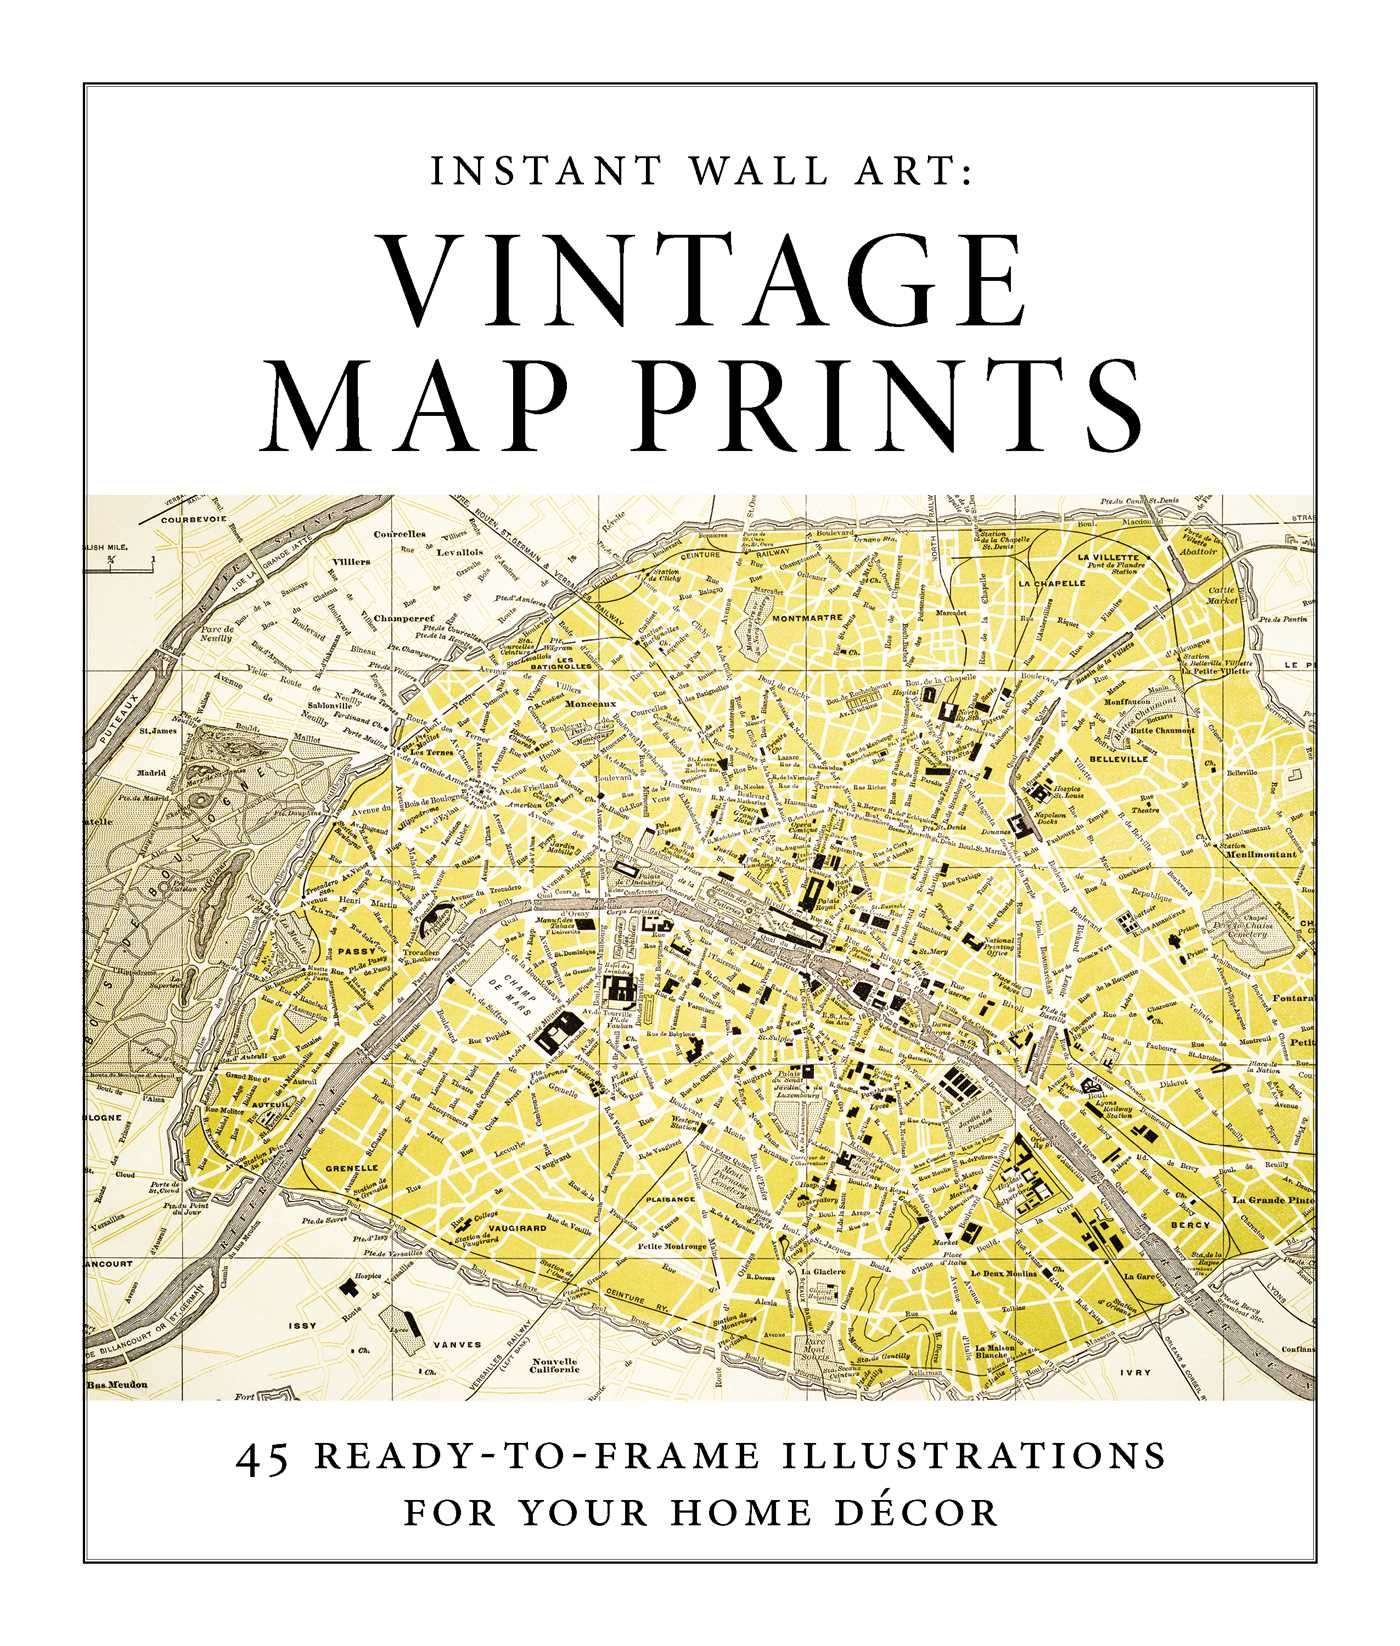 Instant wall art vintage map prints 9781507205891 hr